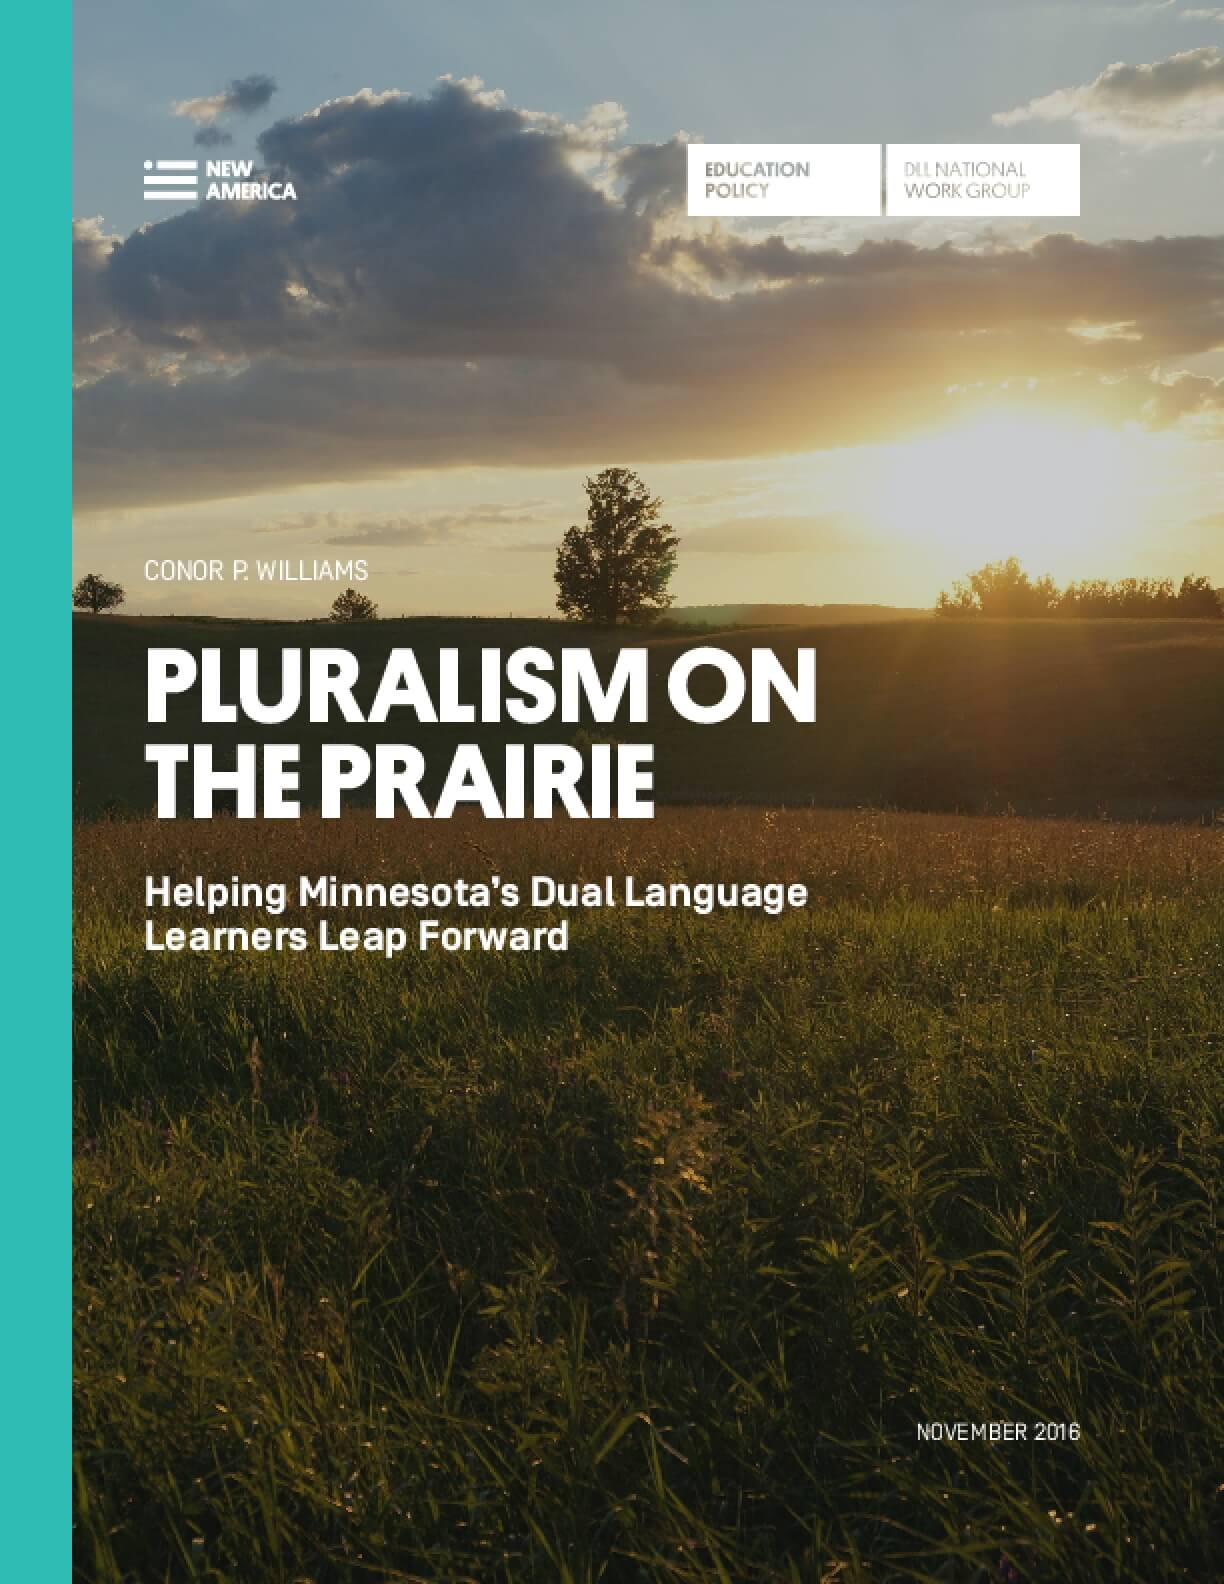 Pluralism on the Prairie: Helping Minnesota's Dual Language Learners Leap Forward